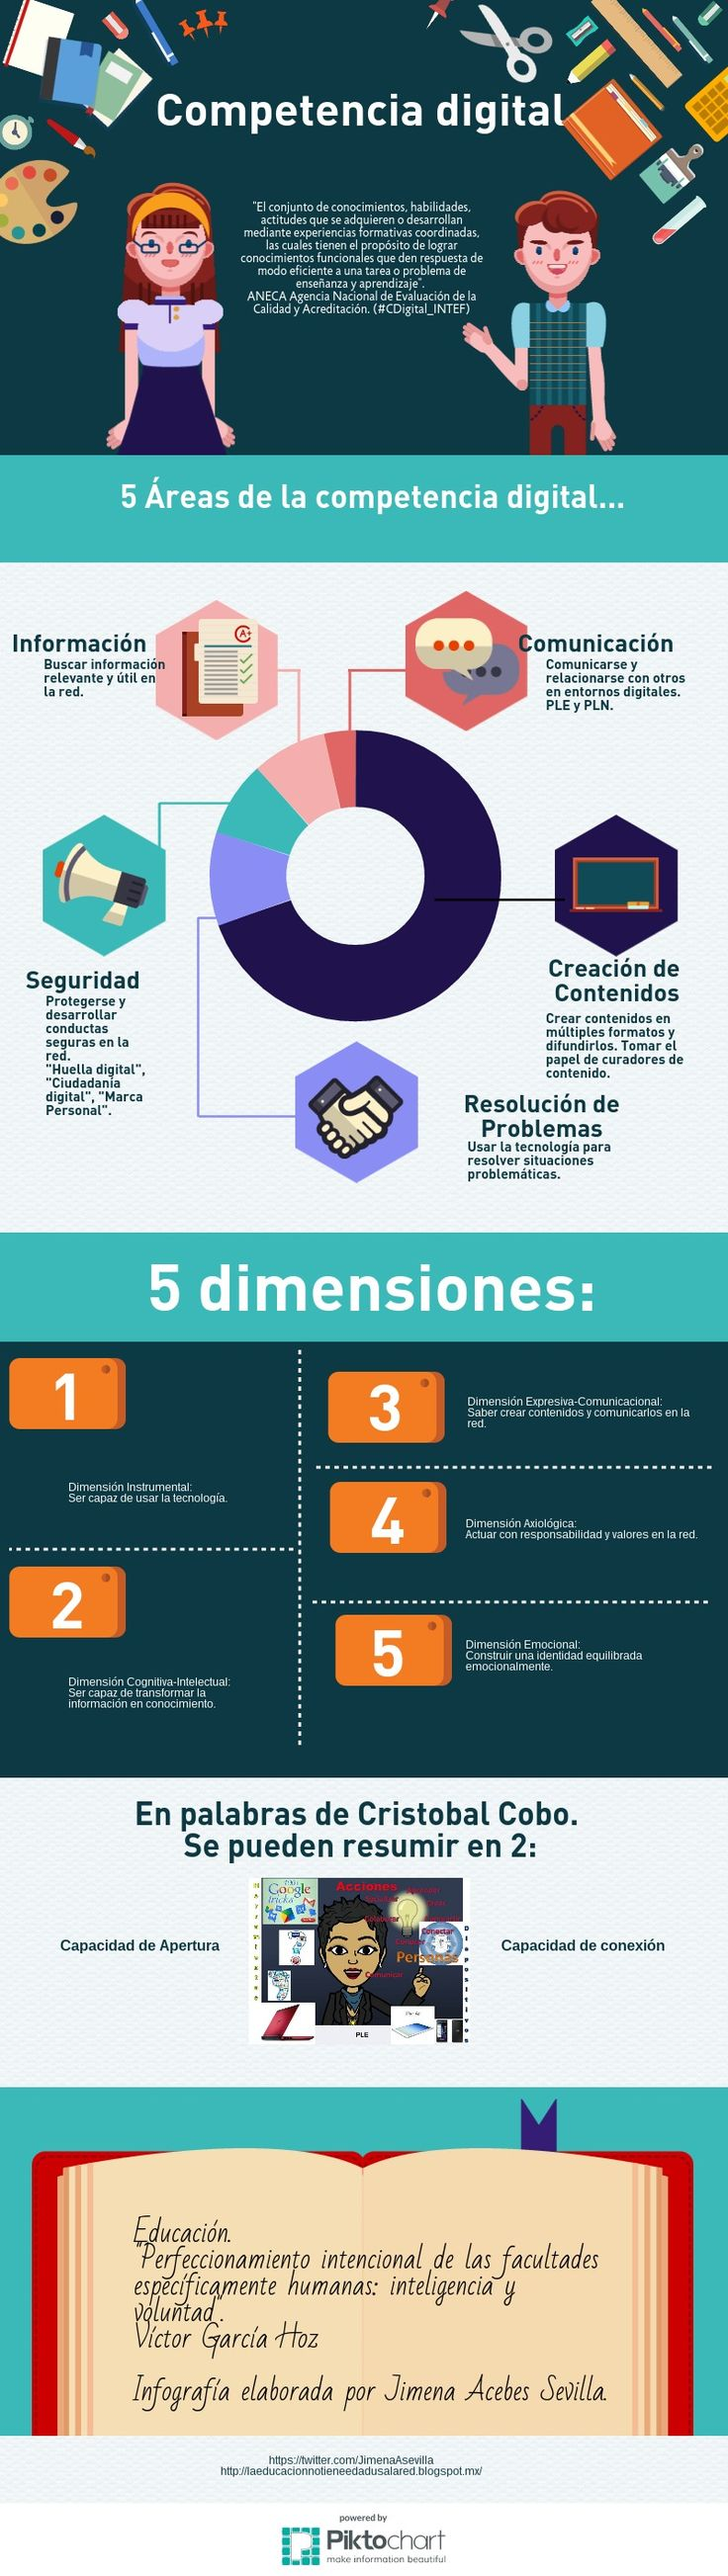 Competencia Digital | Piktochart Infographic Editor